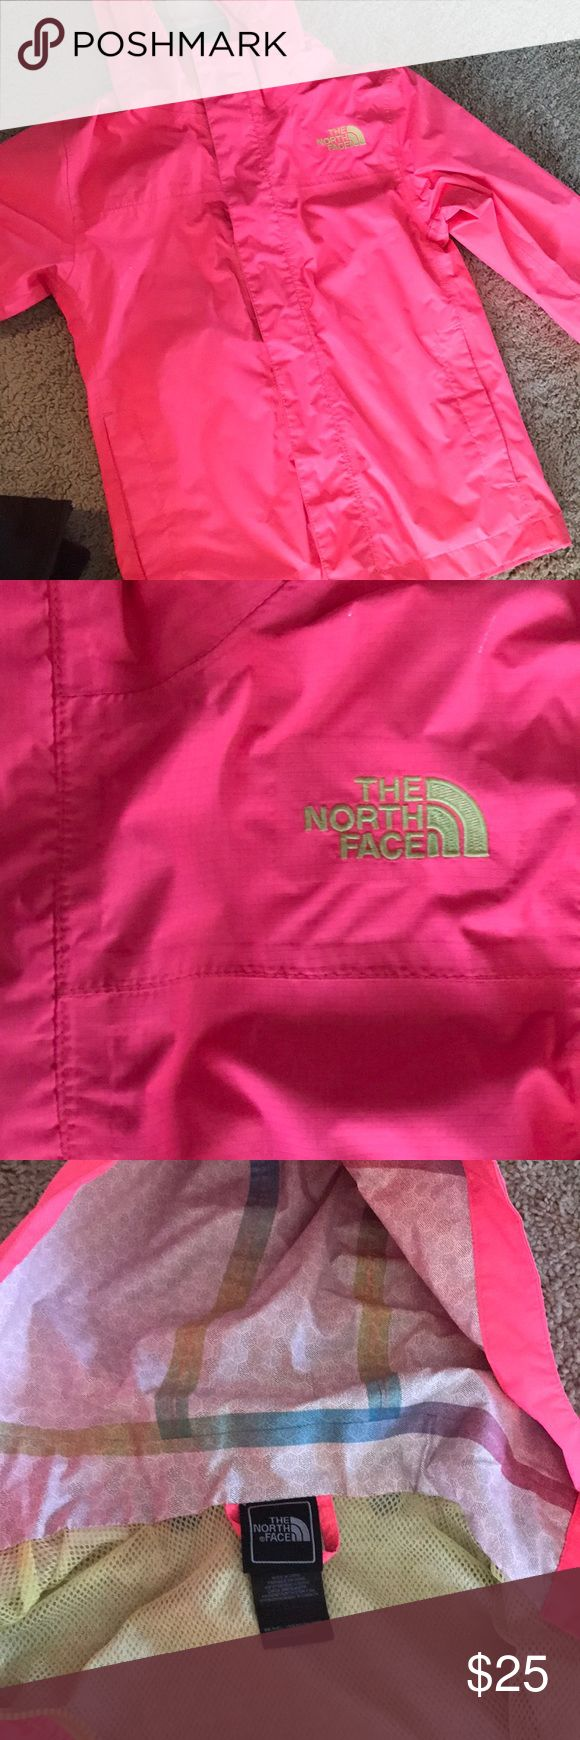 Girls North Face rain jacket Perfect condition, pretty pink rain jacket. Waterproof with hood. Size 7/8 The North Face Jackets & Coats Raincoats